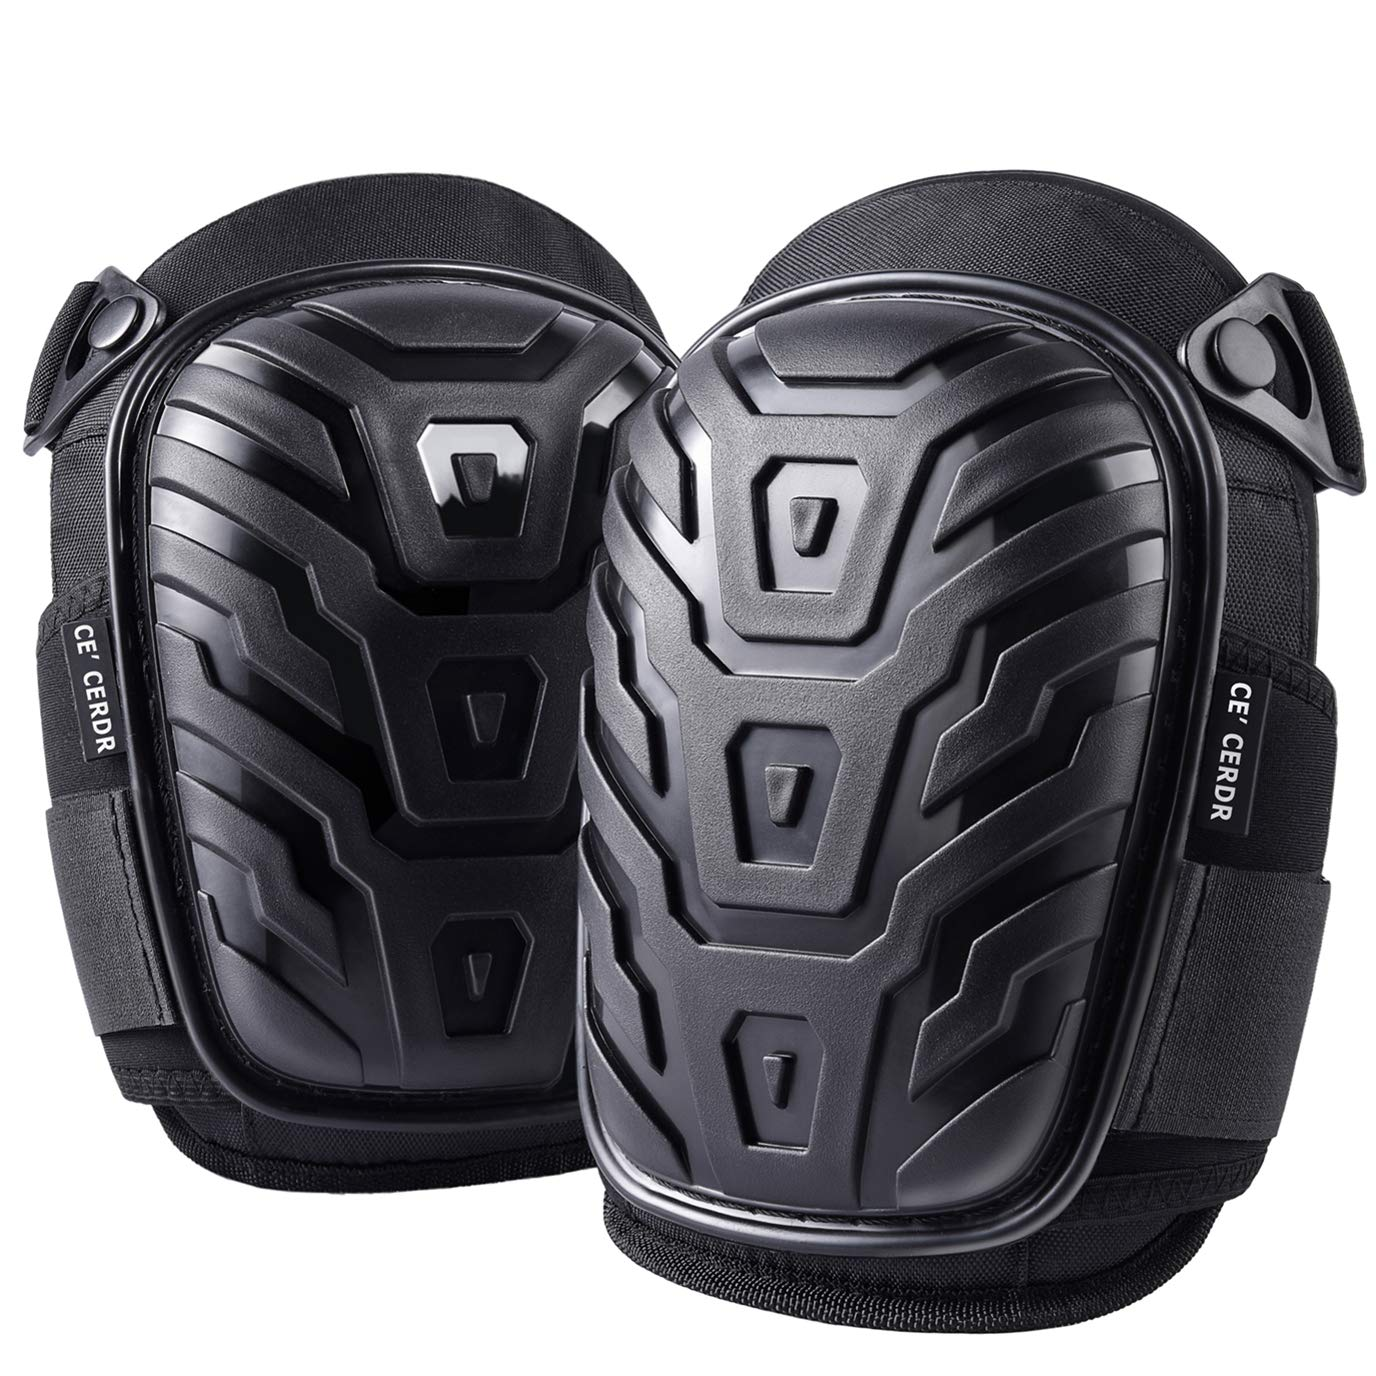 Professional Knee Pads for Work - Heavy Duty Foam Padding Kneepads for Construction, Gardening, Flooring with Comfortable Gel Cushion to Save Your Knees by CE' CERDR